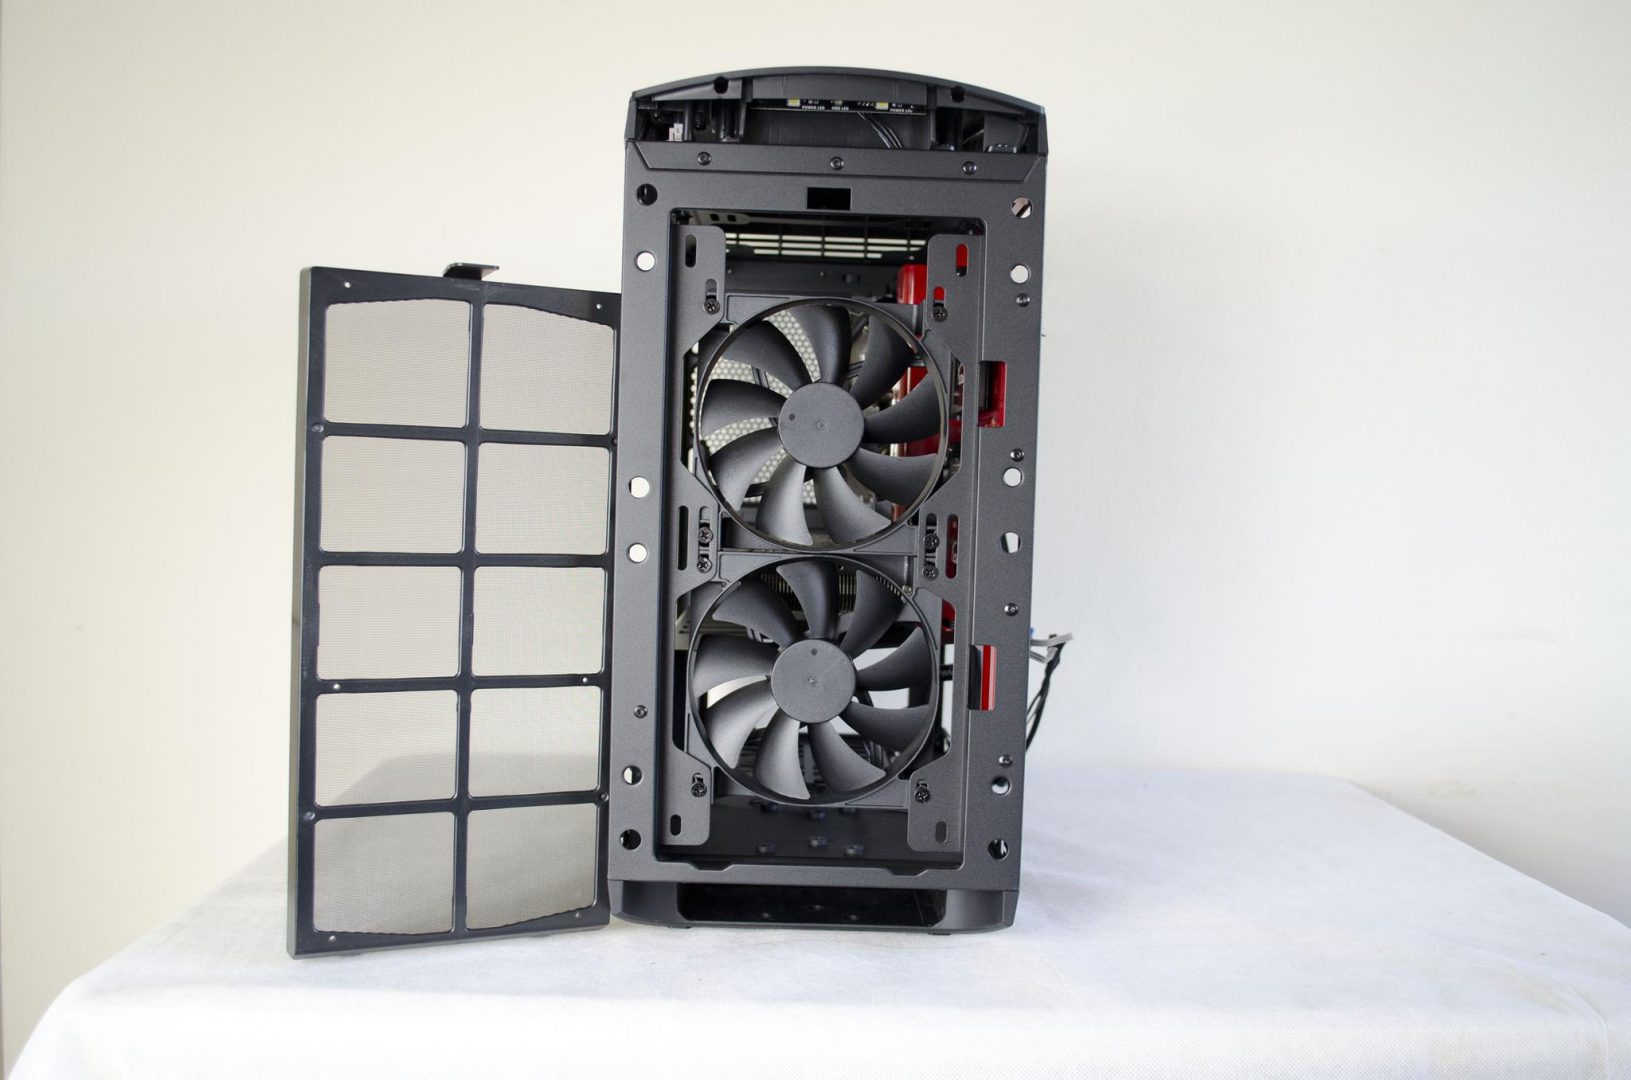 nzxt manta pc case review_18